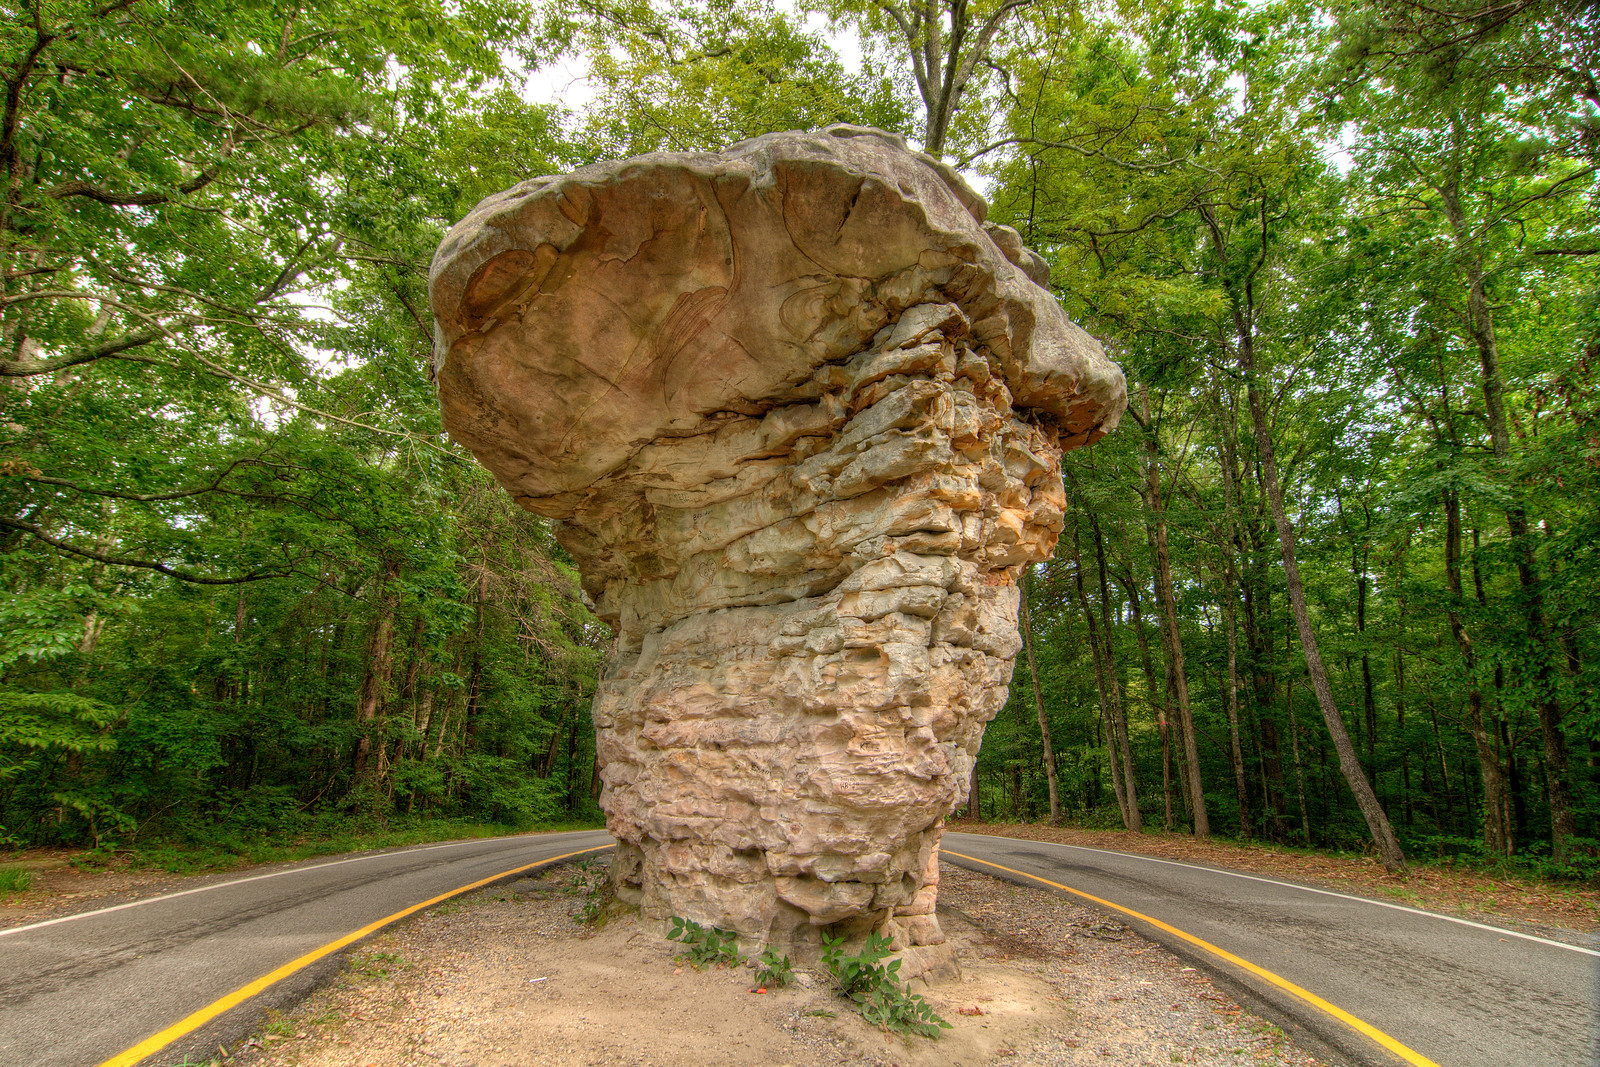 The road splits around Mushroom Rock at the Little River Canyon National Preserve in Mentone, AL on Sunday, July 19, 2015. Copyright 2015 Jason Barnette